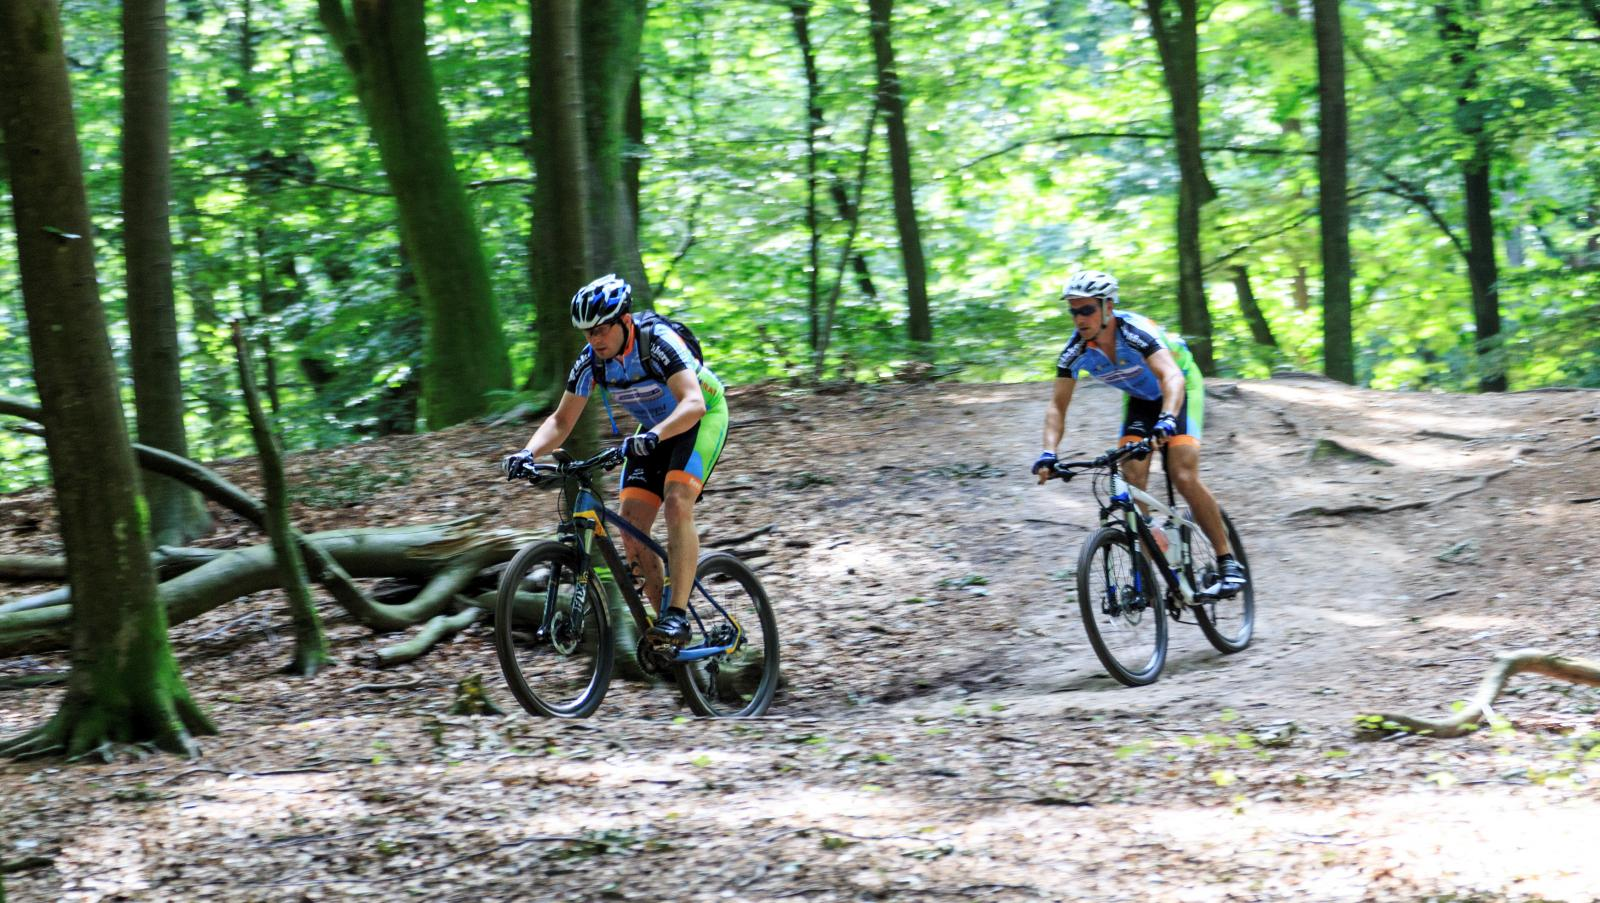 Visit Veluwe Mountainbike